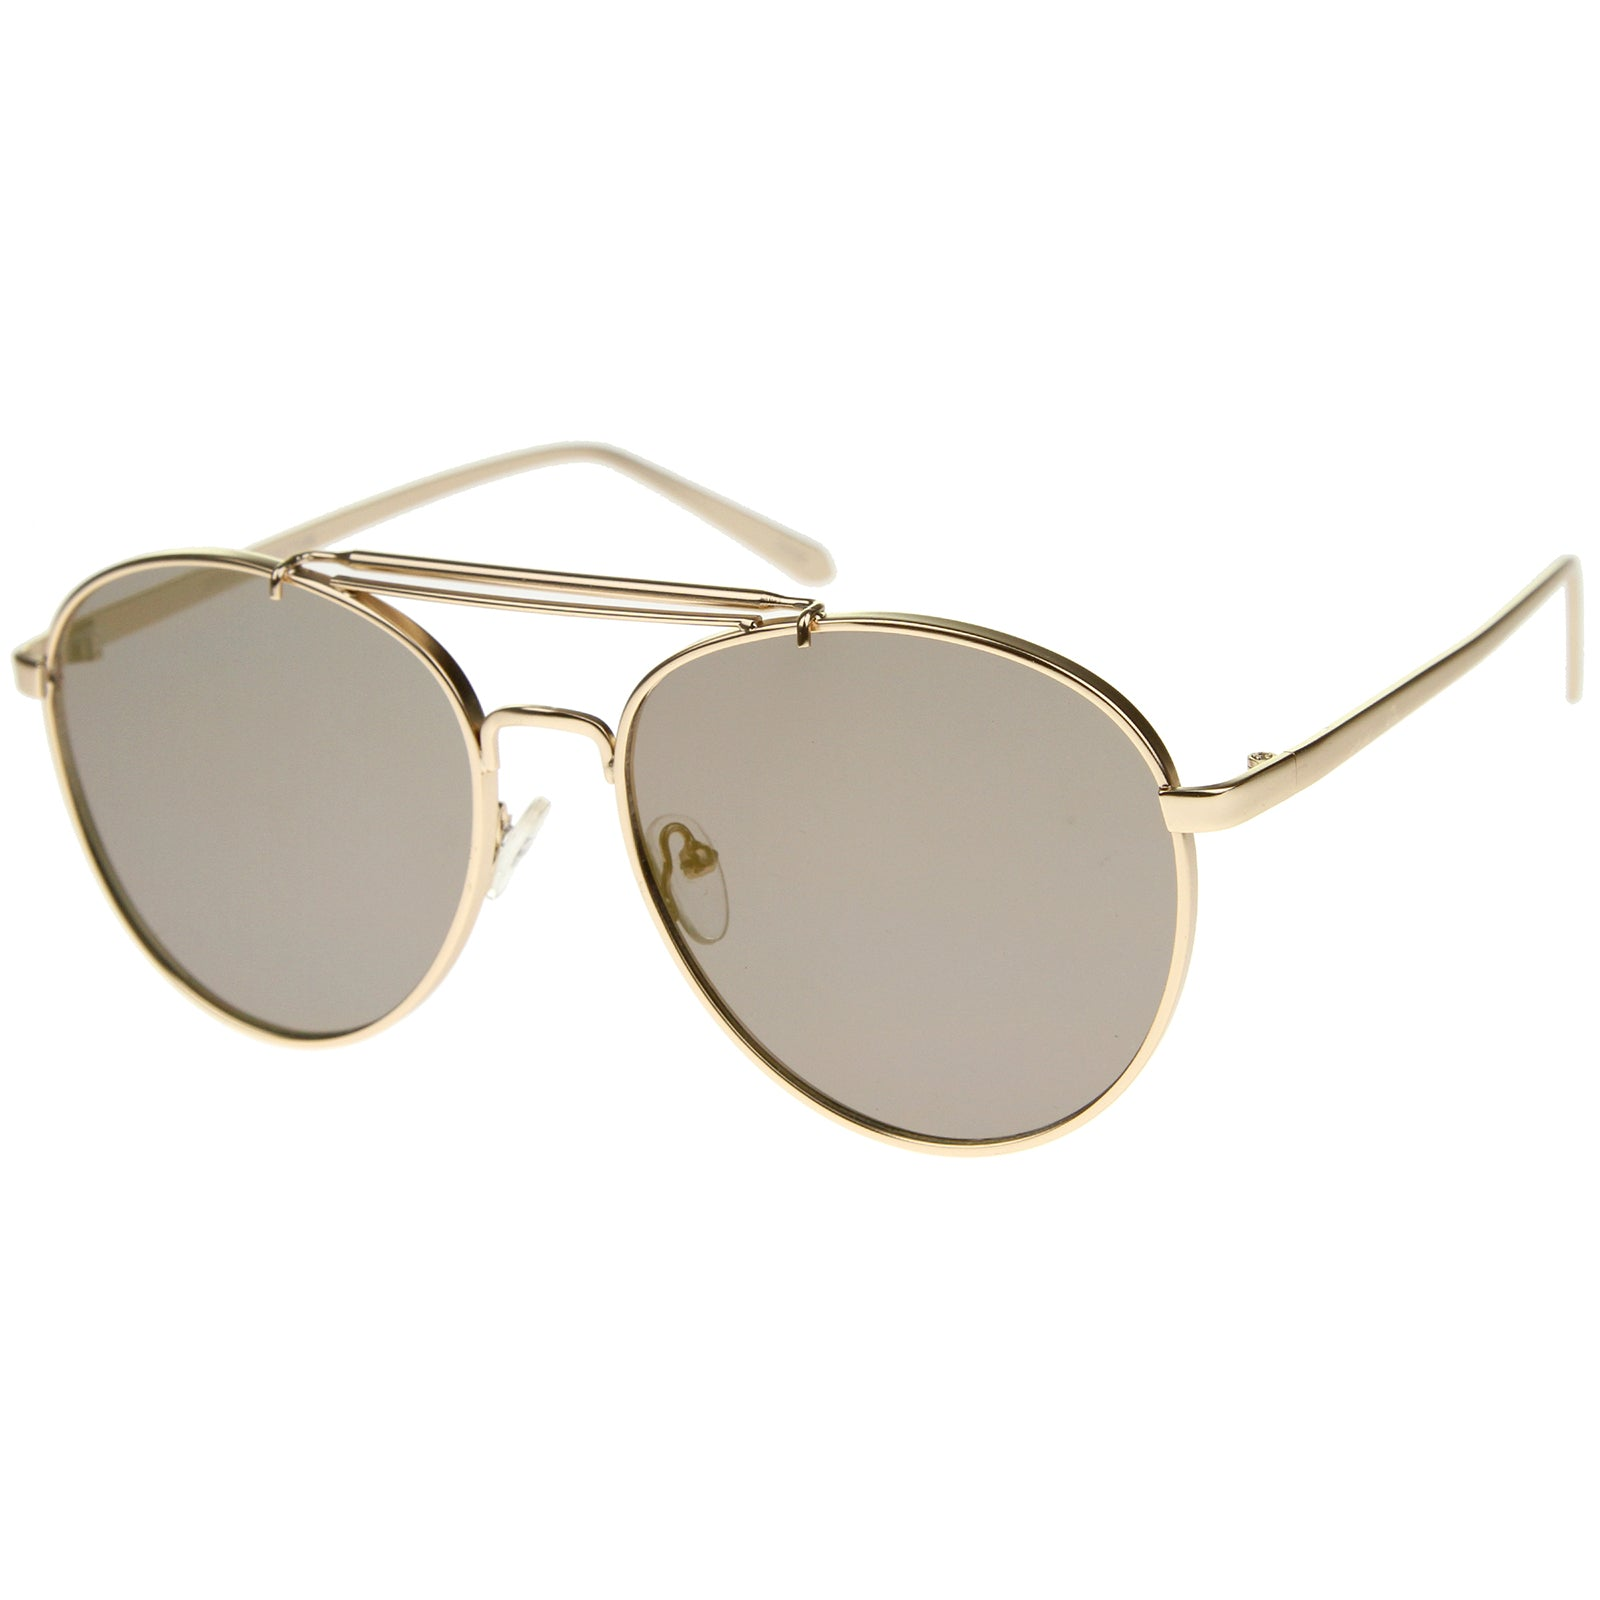 Large Metal Teardrop Double Bridge Mirrored Flat Lens Aviator Sunglasses 60mm - sunglass.la - 22